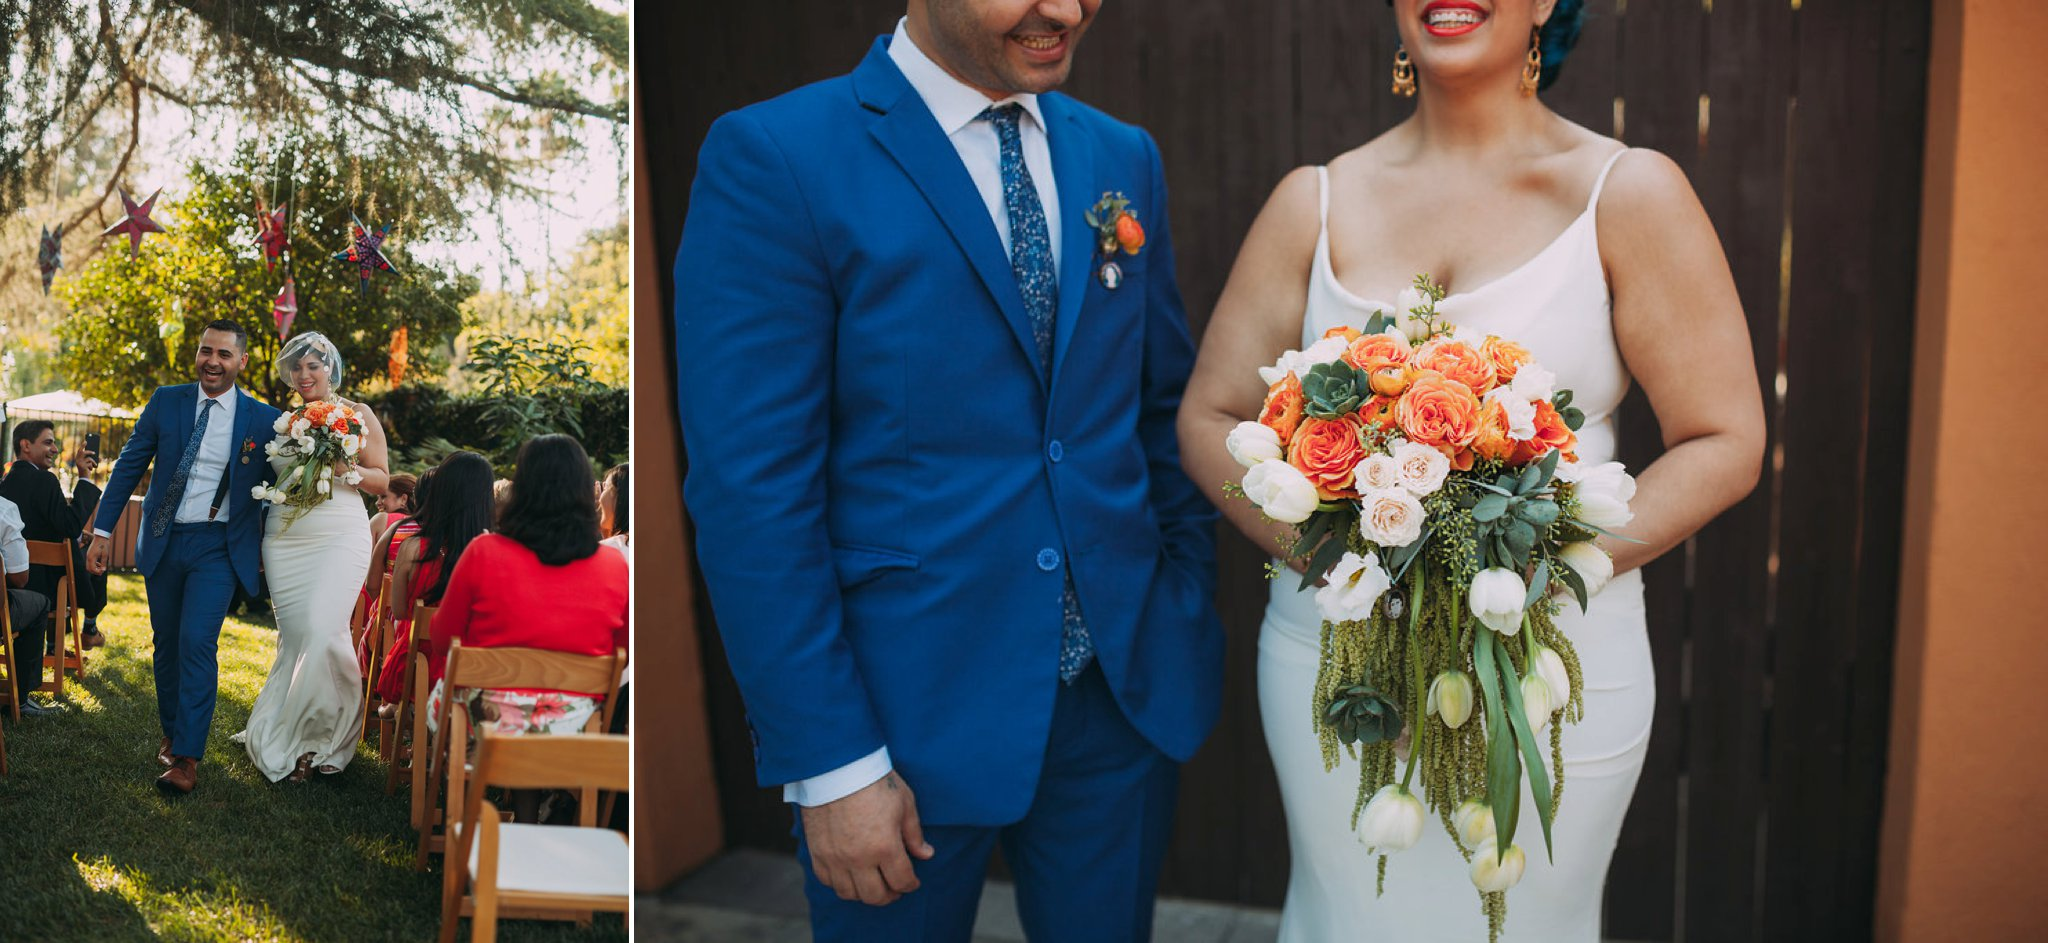 Feminist Wedding Photography Carly Romeo Photography Richmond VA Destination Altadena California Just Married Bouquet Blue Orange